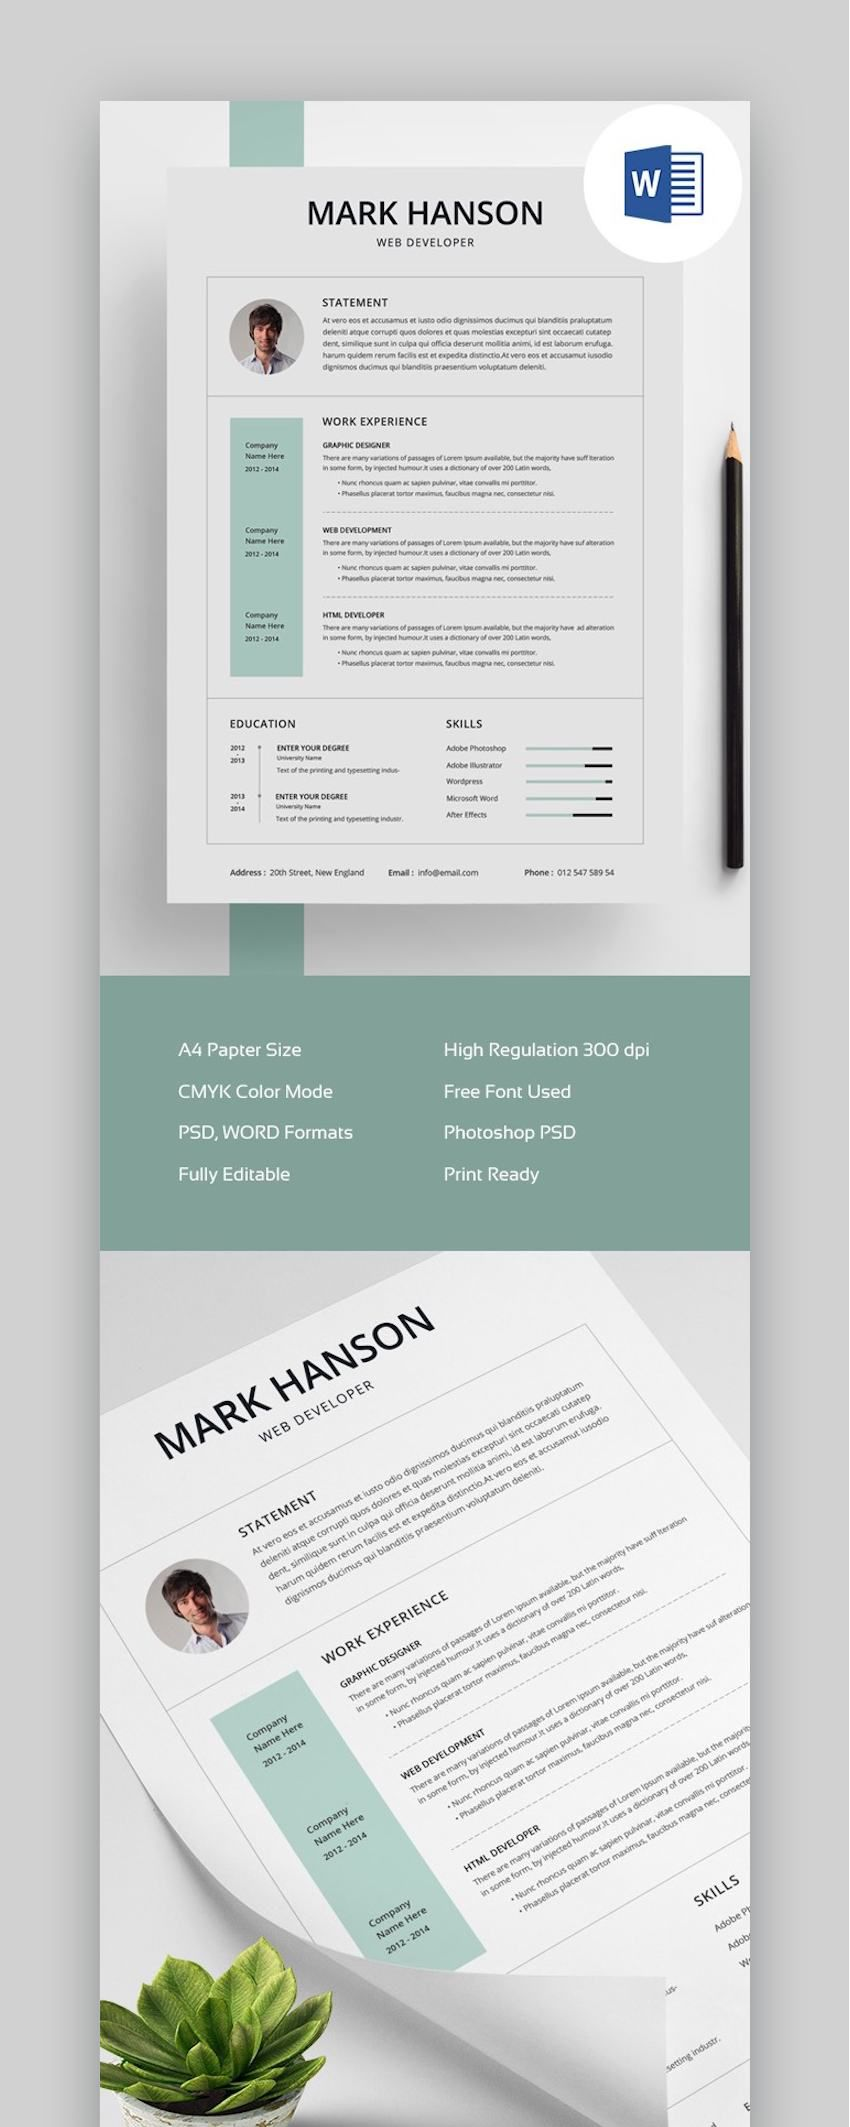 004 Surprising Cv Design Photoshop Template Free High Resolution  Creative Resume Psd DownloadFull